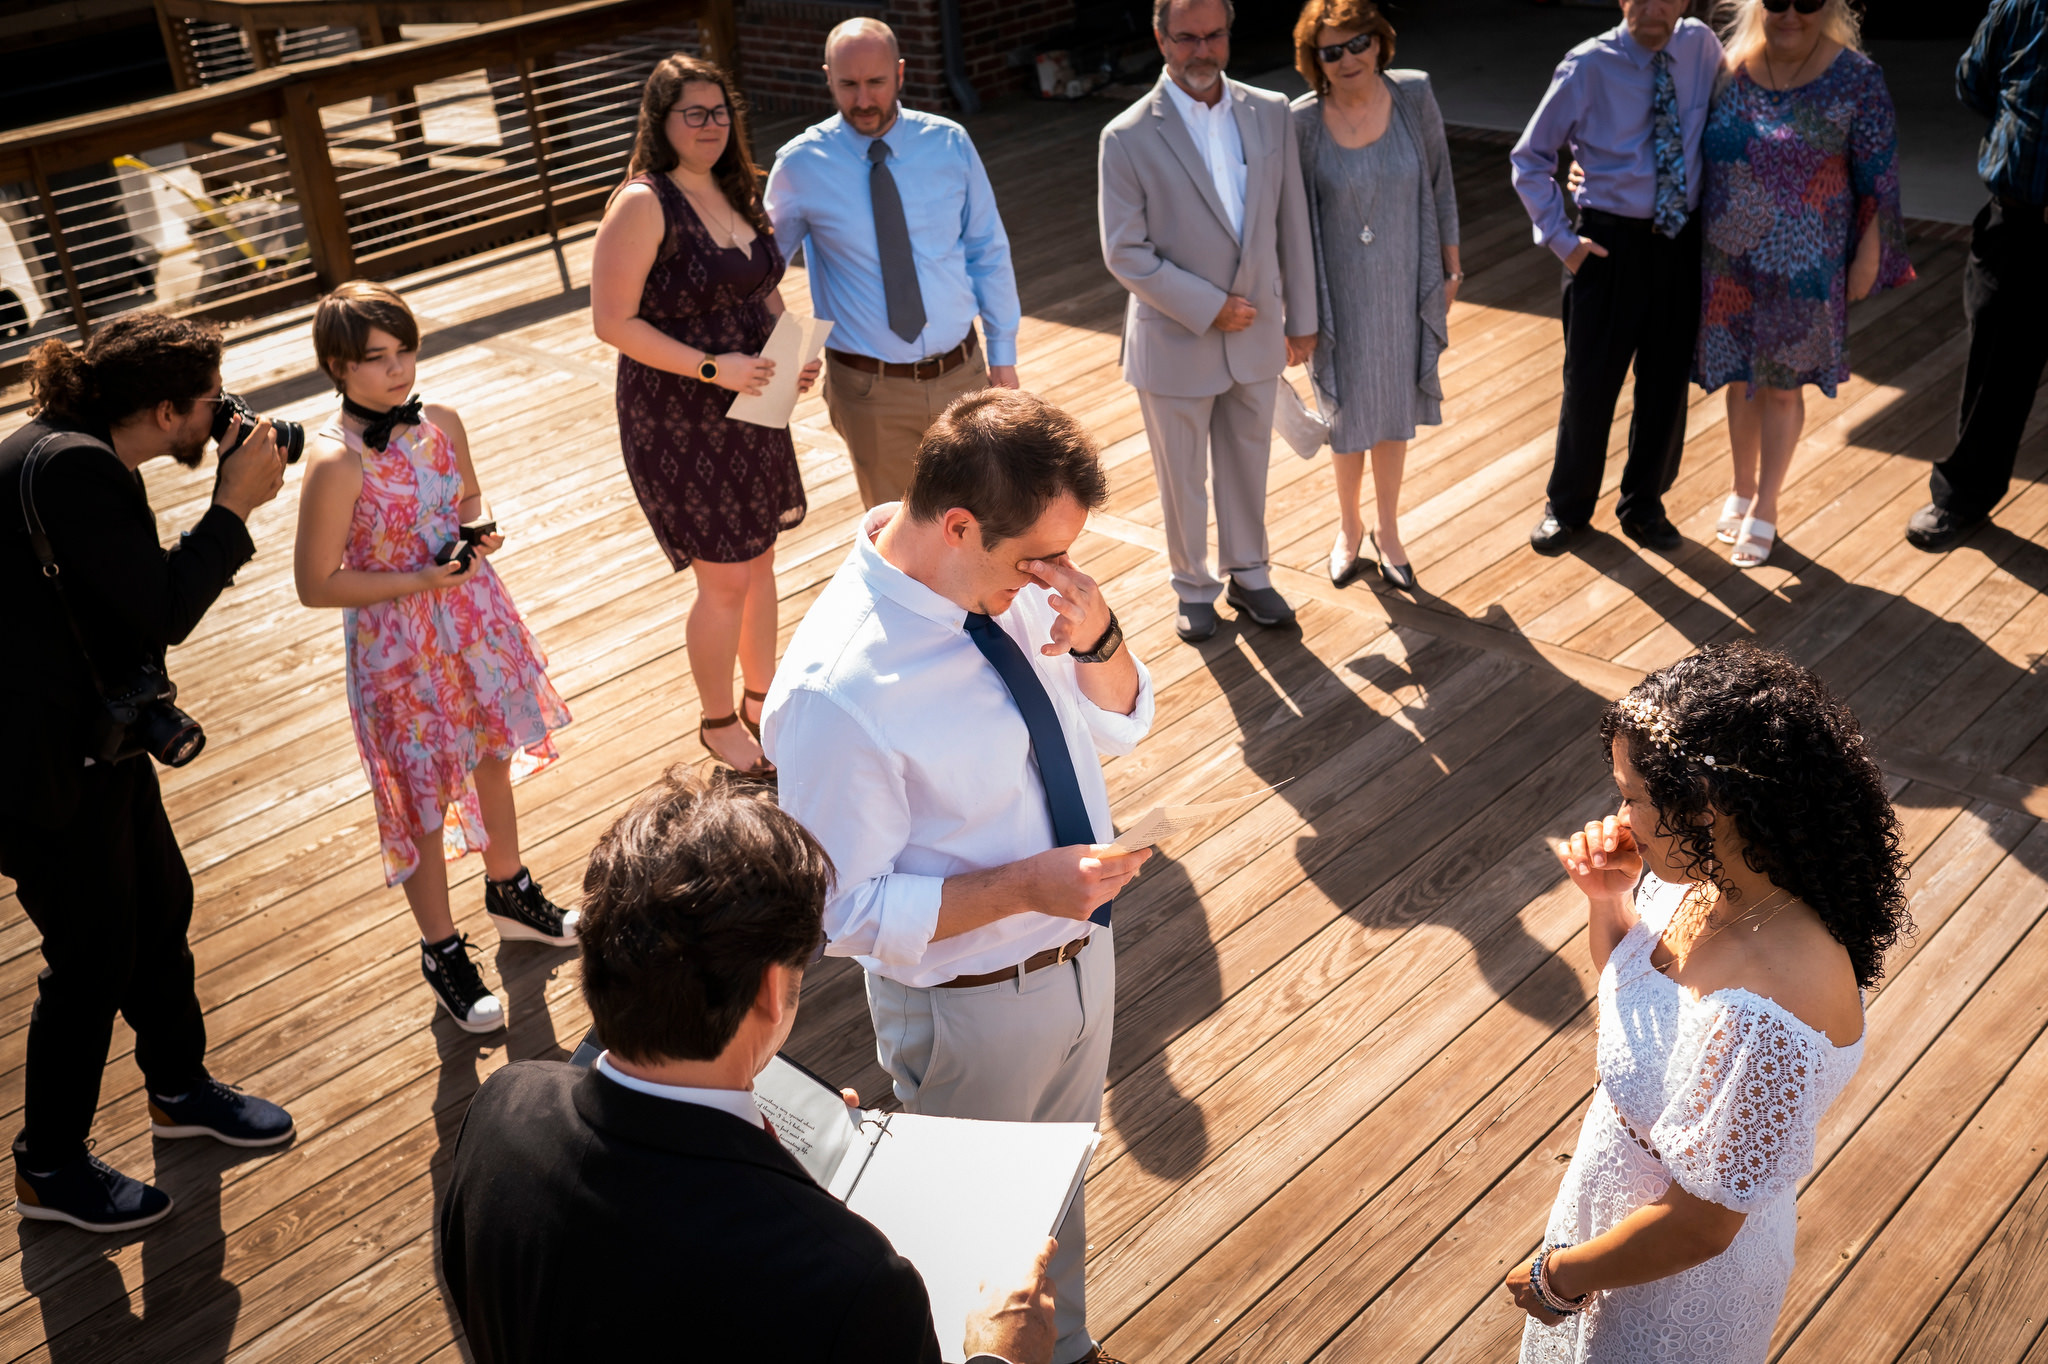 bride and groom exchange vows with lots of emotions- photo by Chrisman Studios, south carolina, lake murray